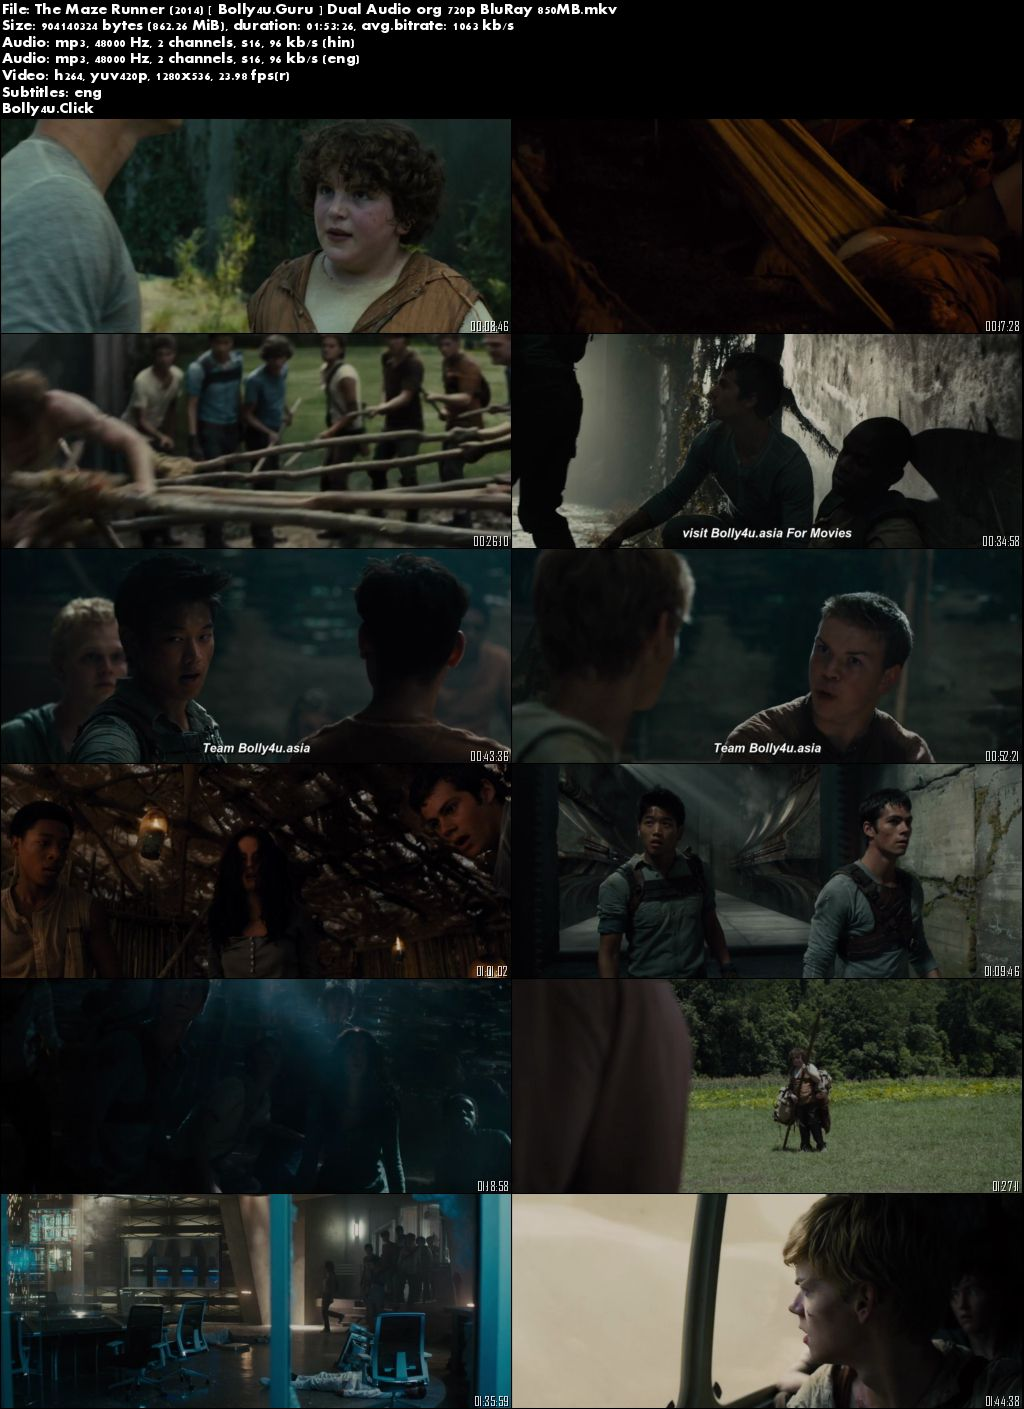 The Maze Runner 2014 Hindi ORG 720p 700Mb BluRay Dual Audio Download Download